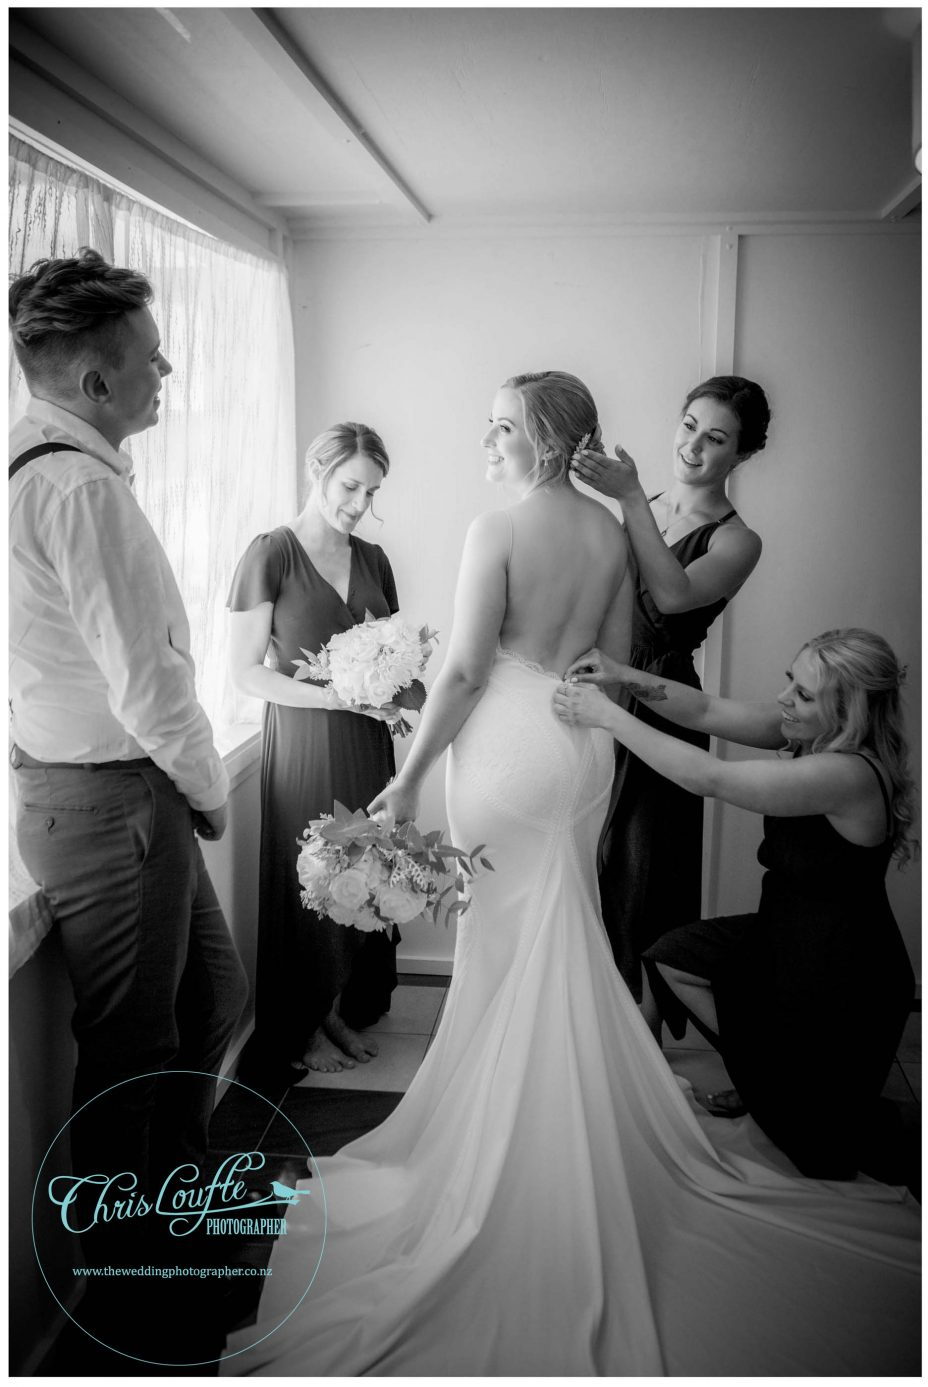 Bride and bridesmaids dressing, black and white photo